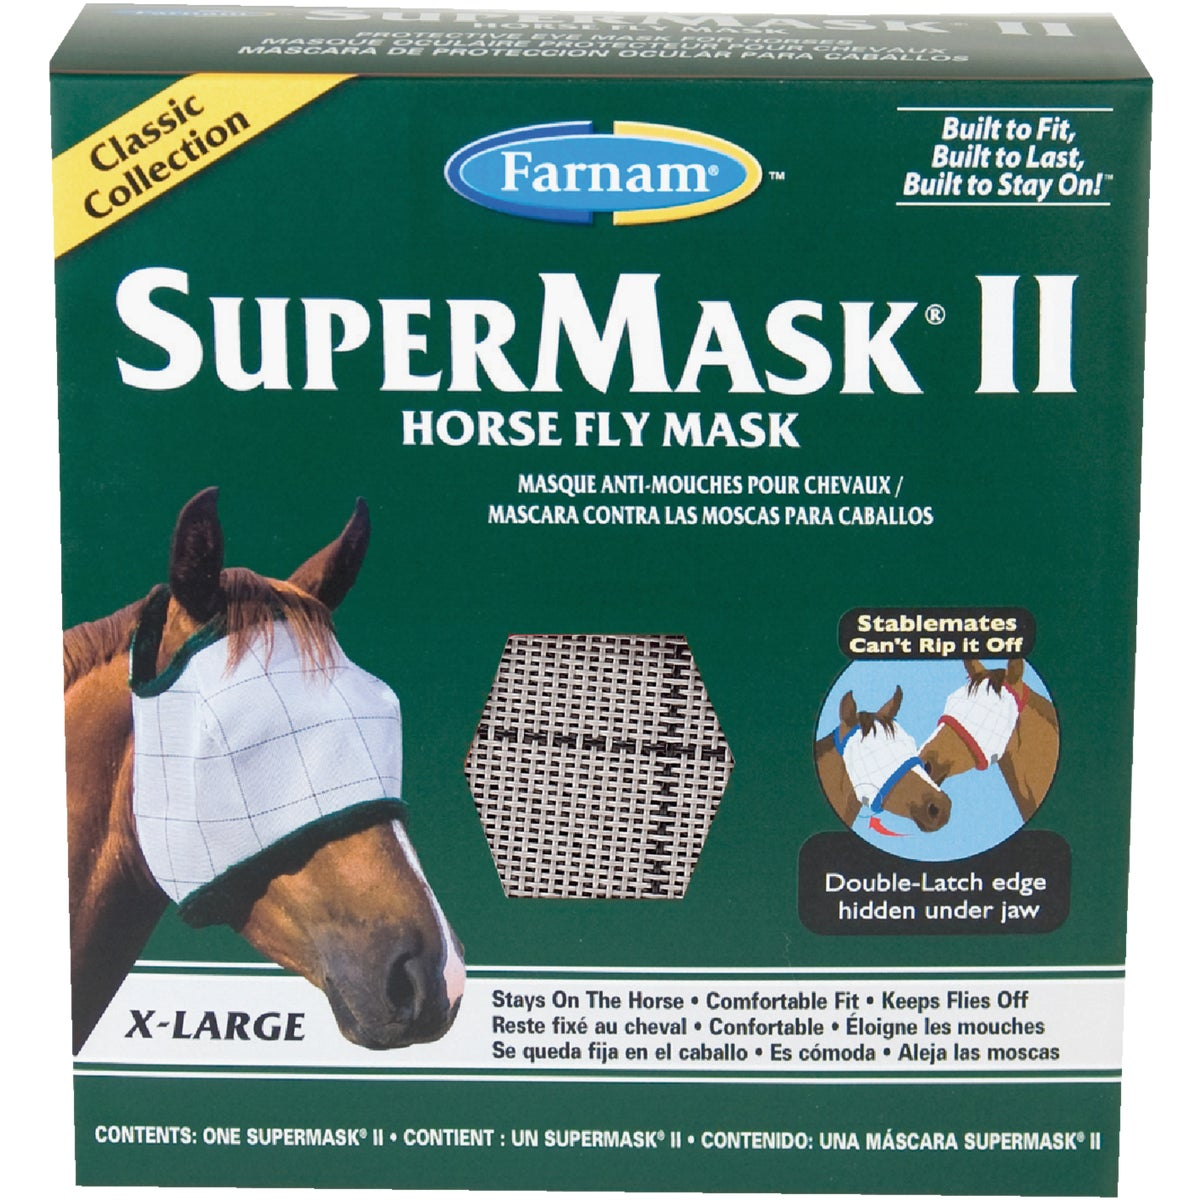 SUPERMSK 2 XL CLASSIC - 100504651 by Farnam Central Life